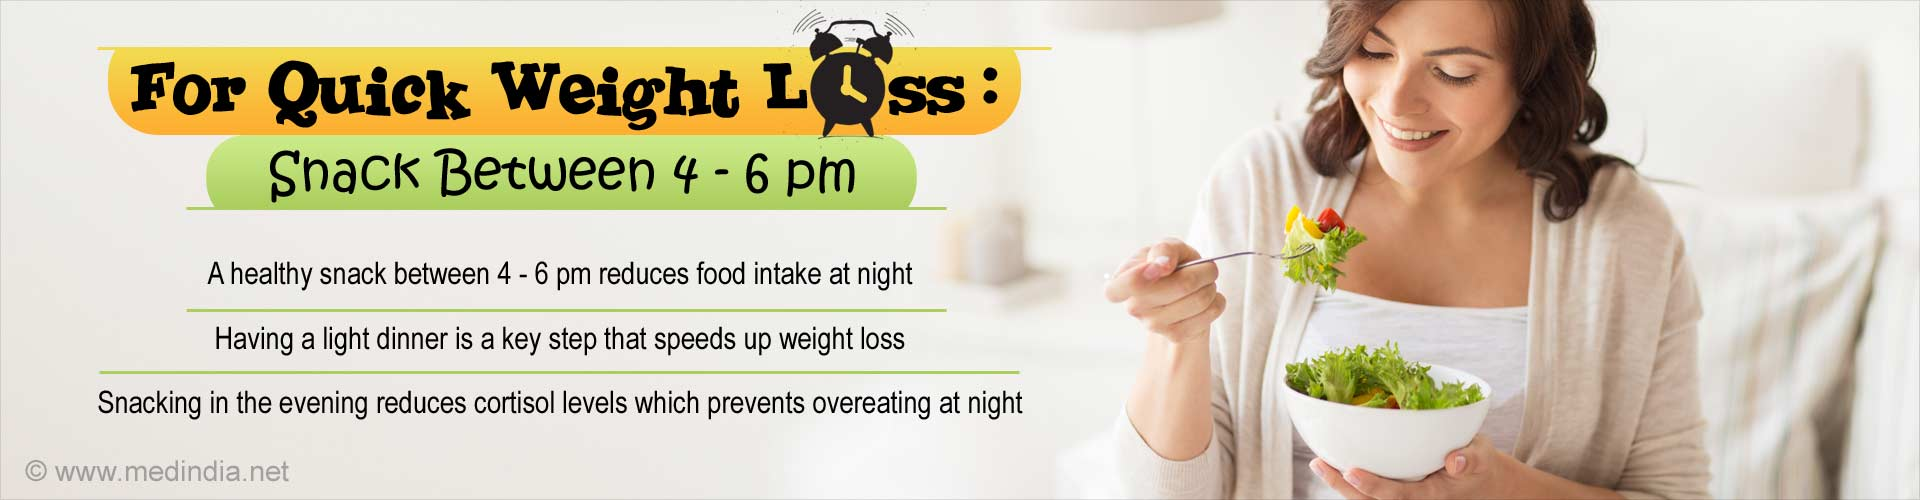 Simple To Do Weight Loss Tip: Have a Snack Between 4 - 6 Pm